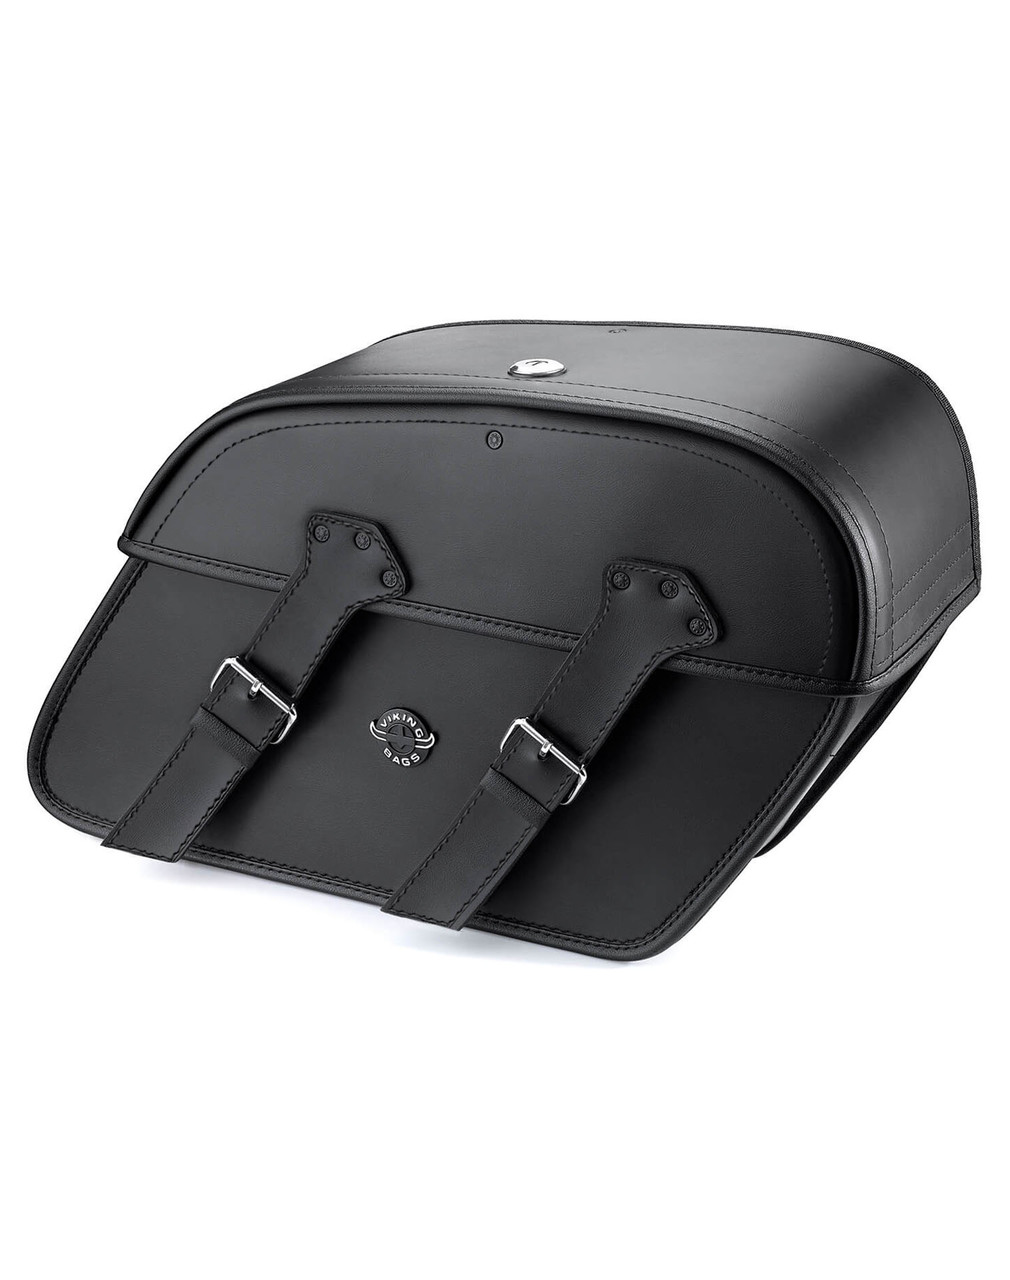 VikingBags Raven Large Double Strap Leather Motorcycle Saddlebags Main Bag View